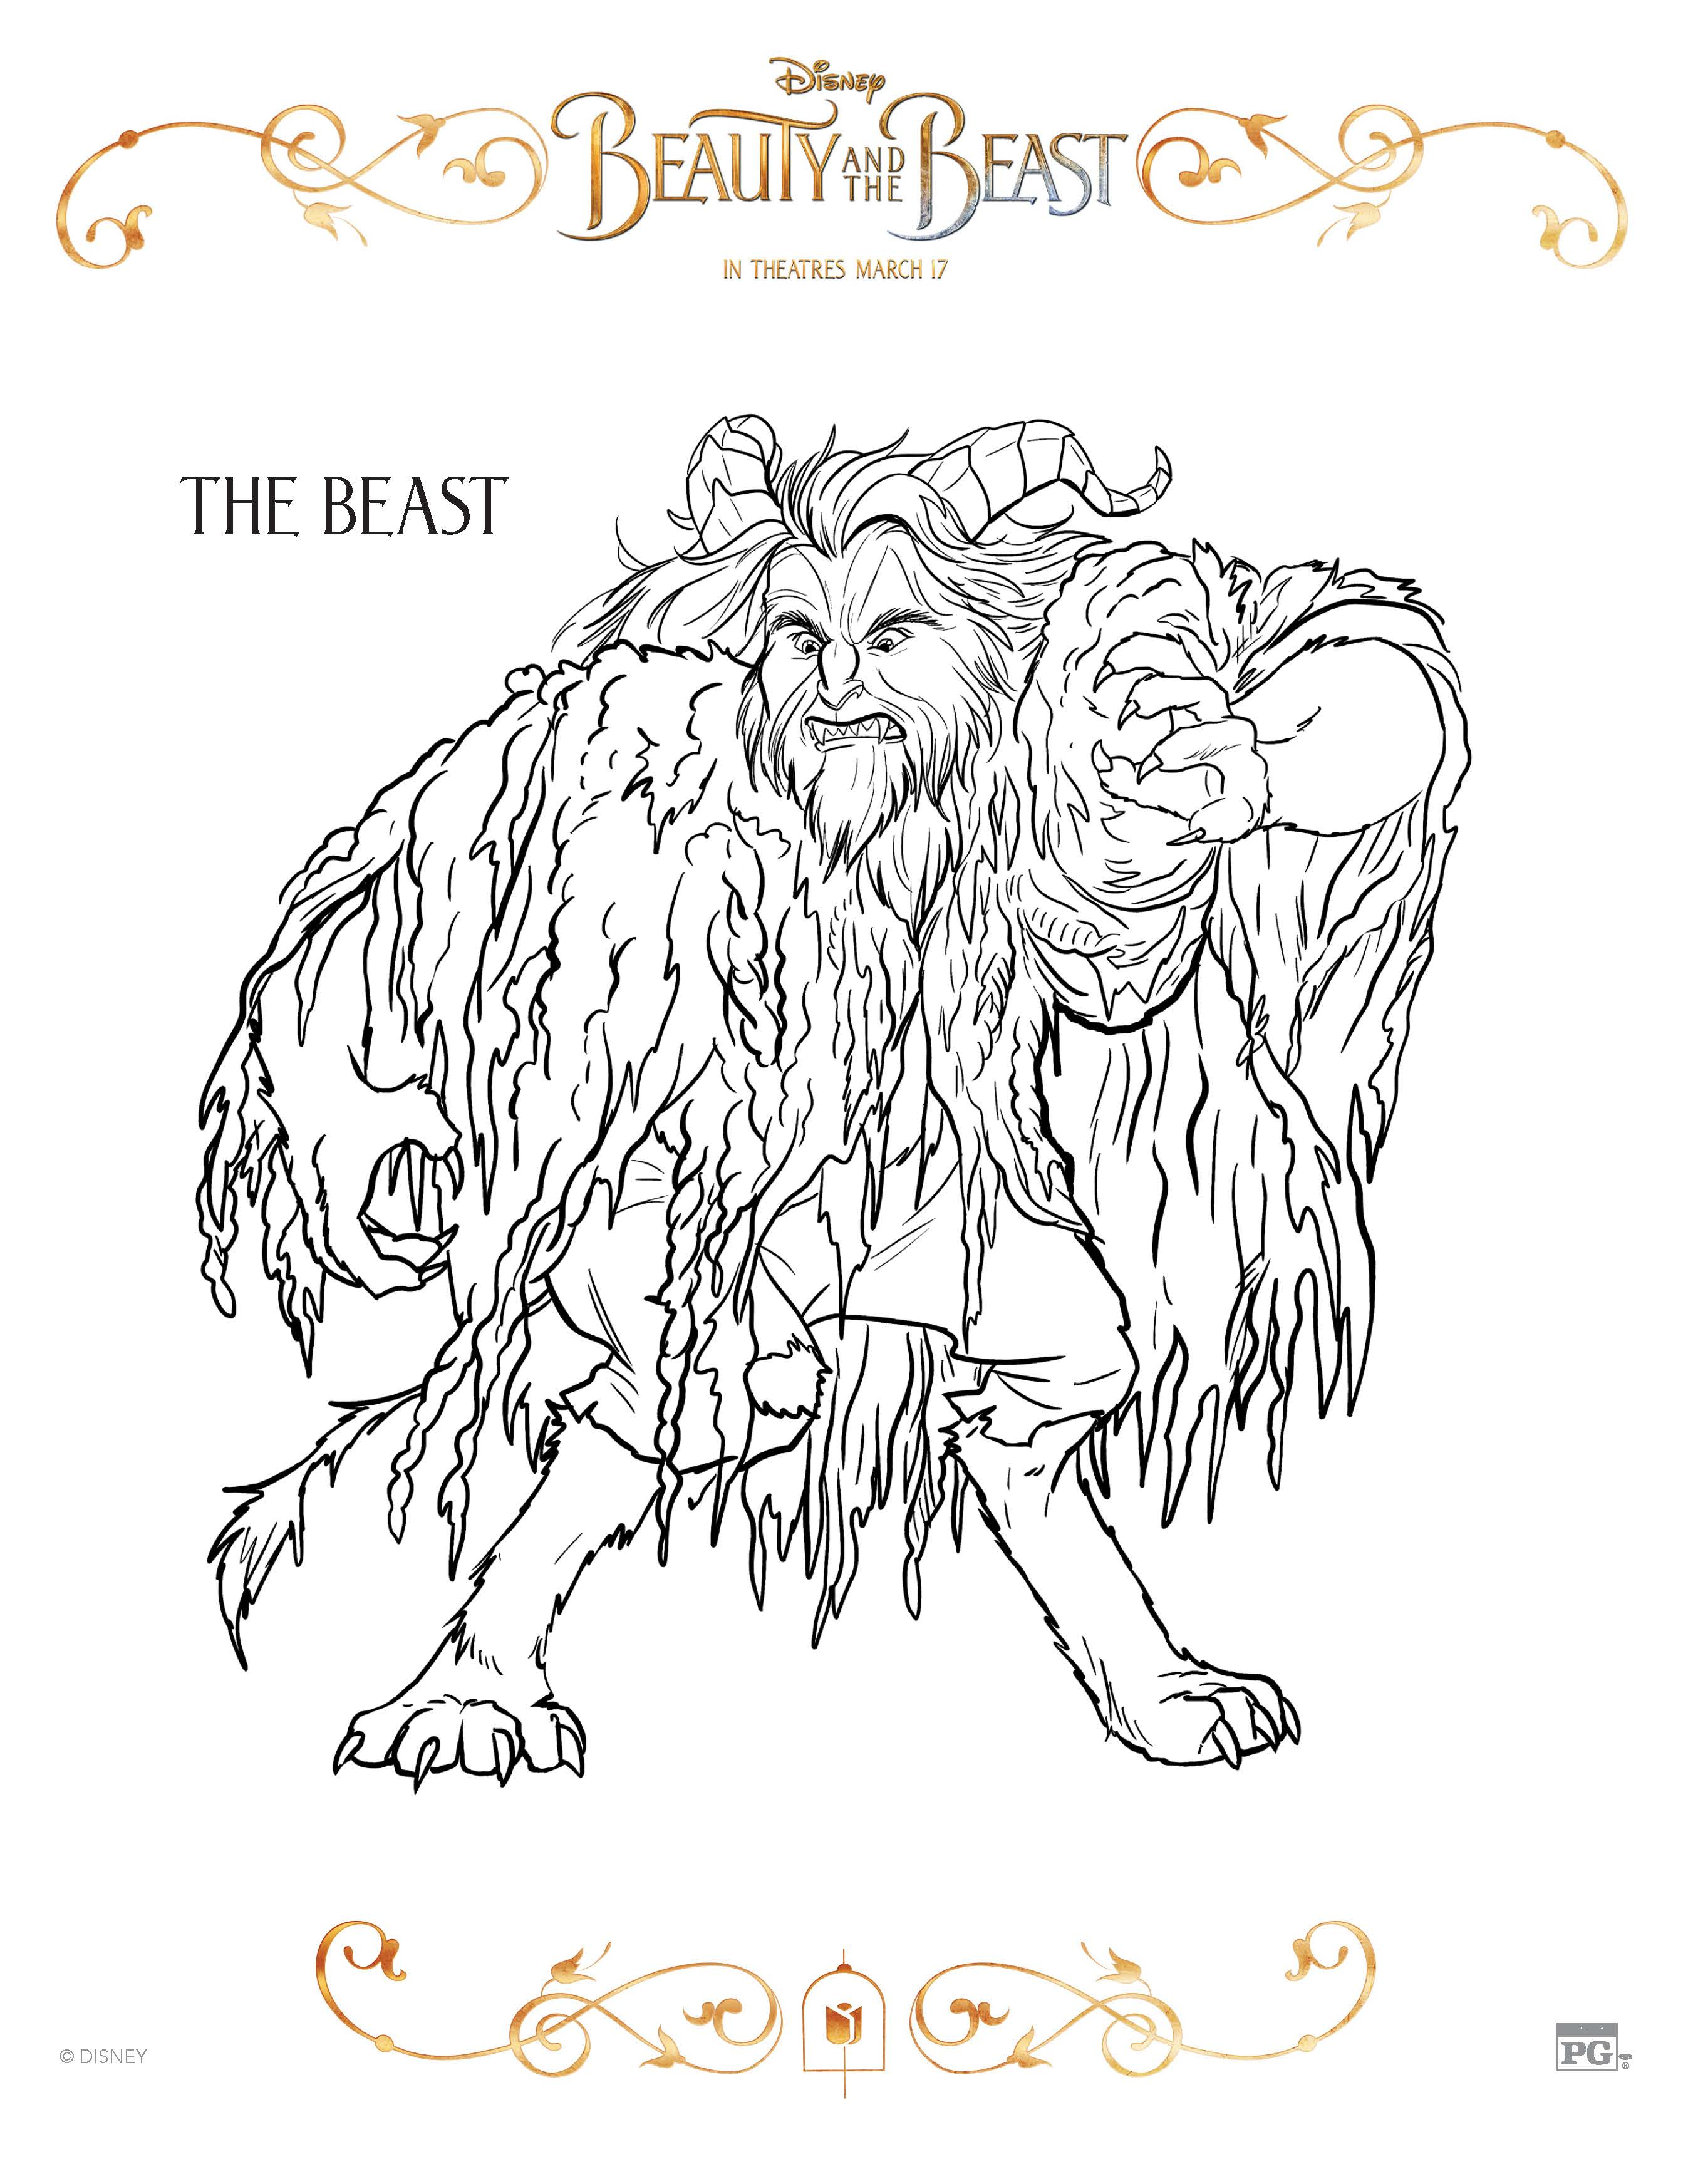 photograph regarding Beauty and the Beast Printable Coloring Pages named 10 Elegance and the Beast Free of charge Printable Coloring Web pages